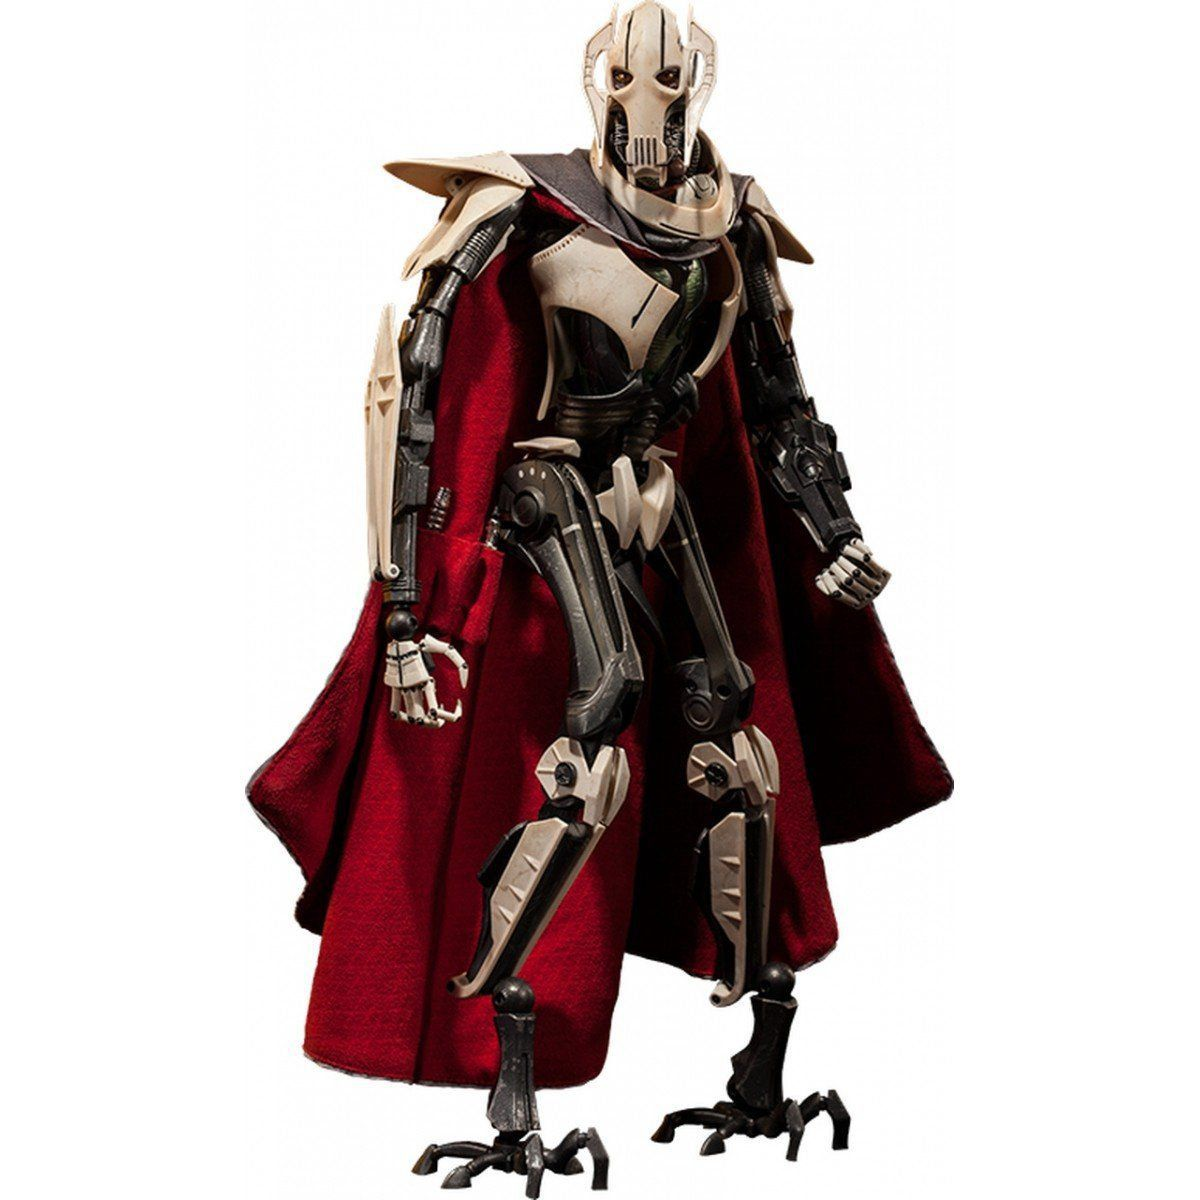 Action Figure General Grievous: Star Wars A Vingança dos Sith (Revenge of the Sith) Escala 1/6 - Sideshow